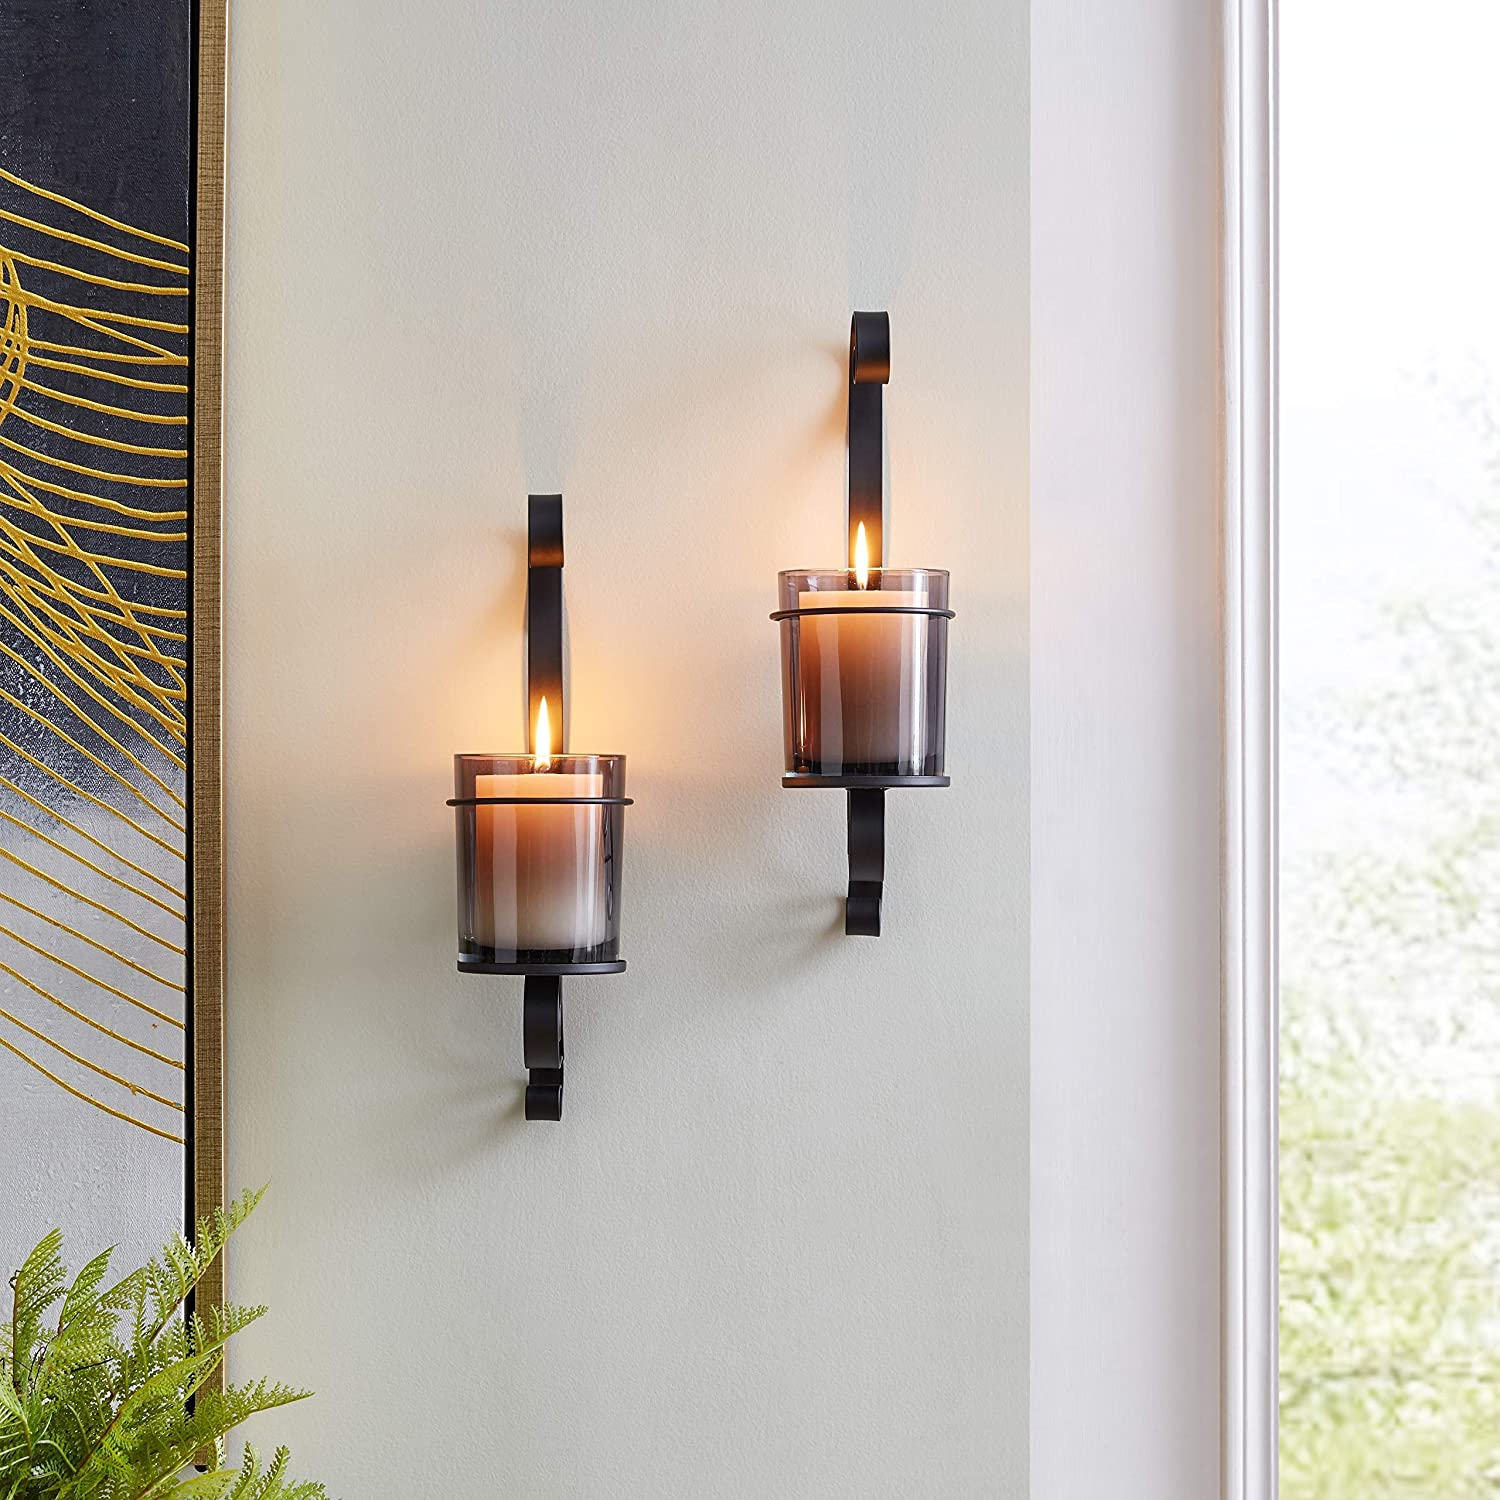 Vintage Black Wall supreme Sconce Candle Holder Smoke Genuine Free Shipping Glass Set 2 with